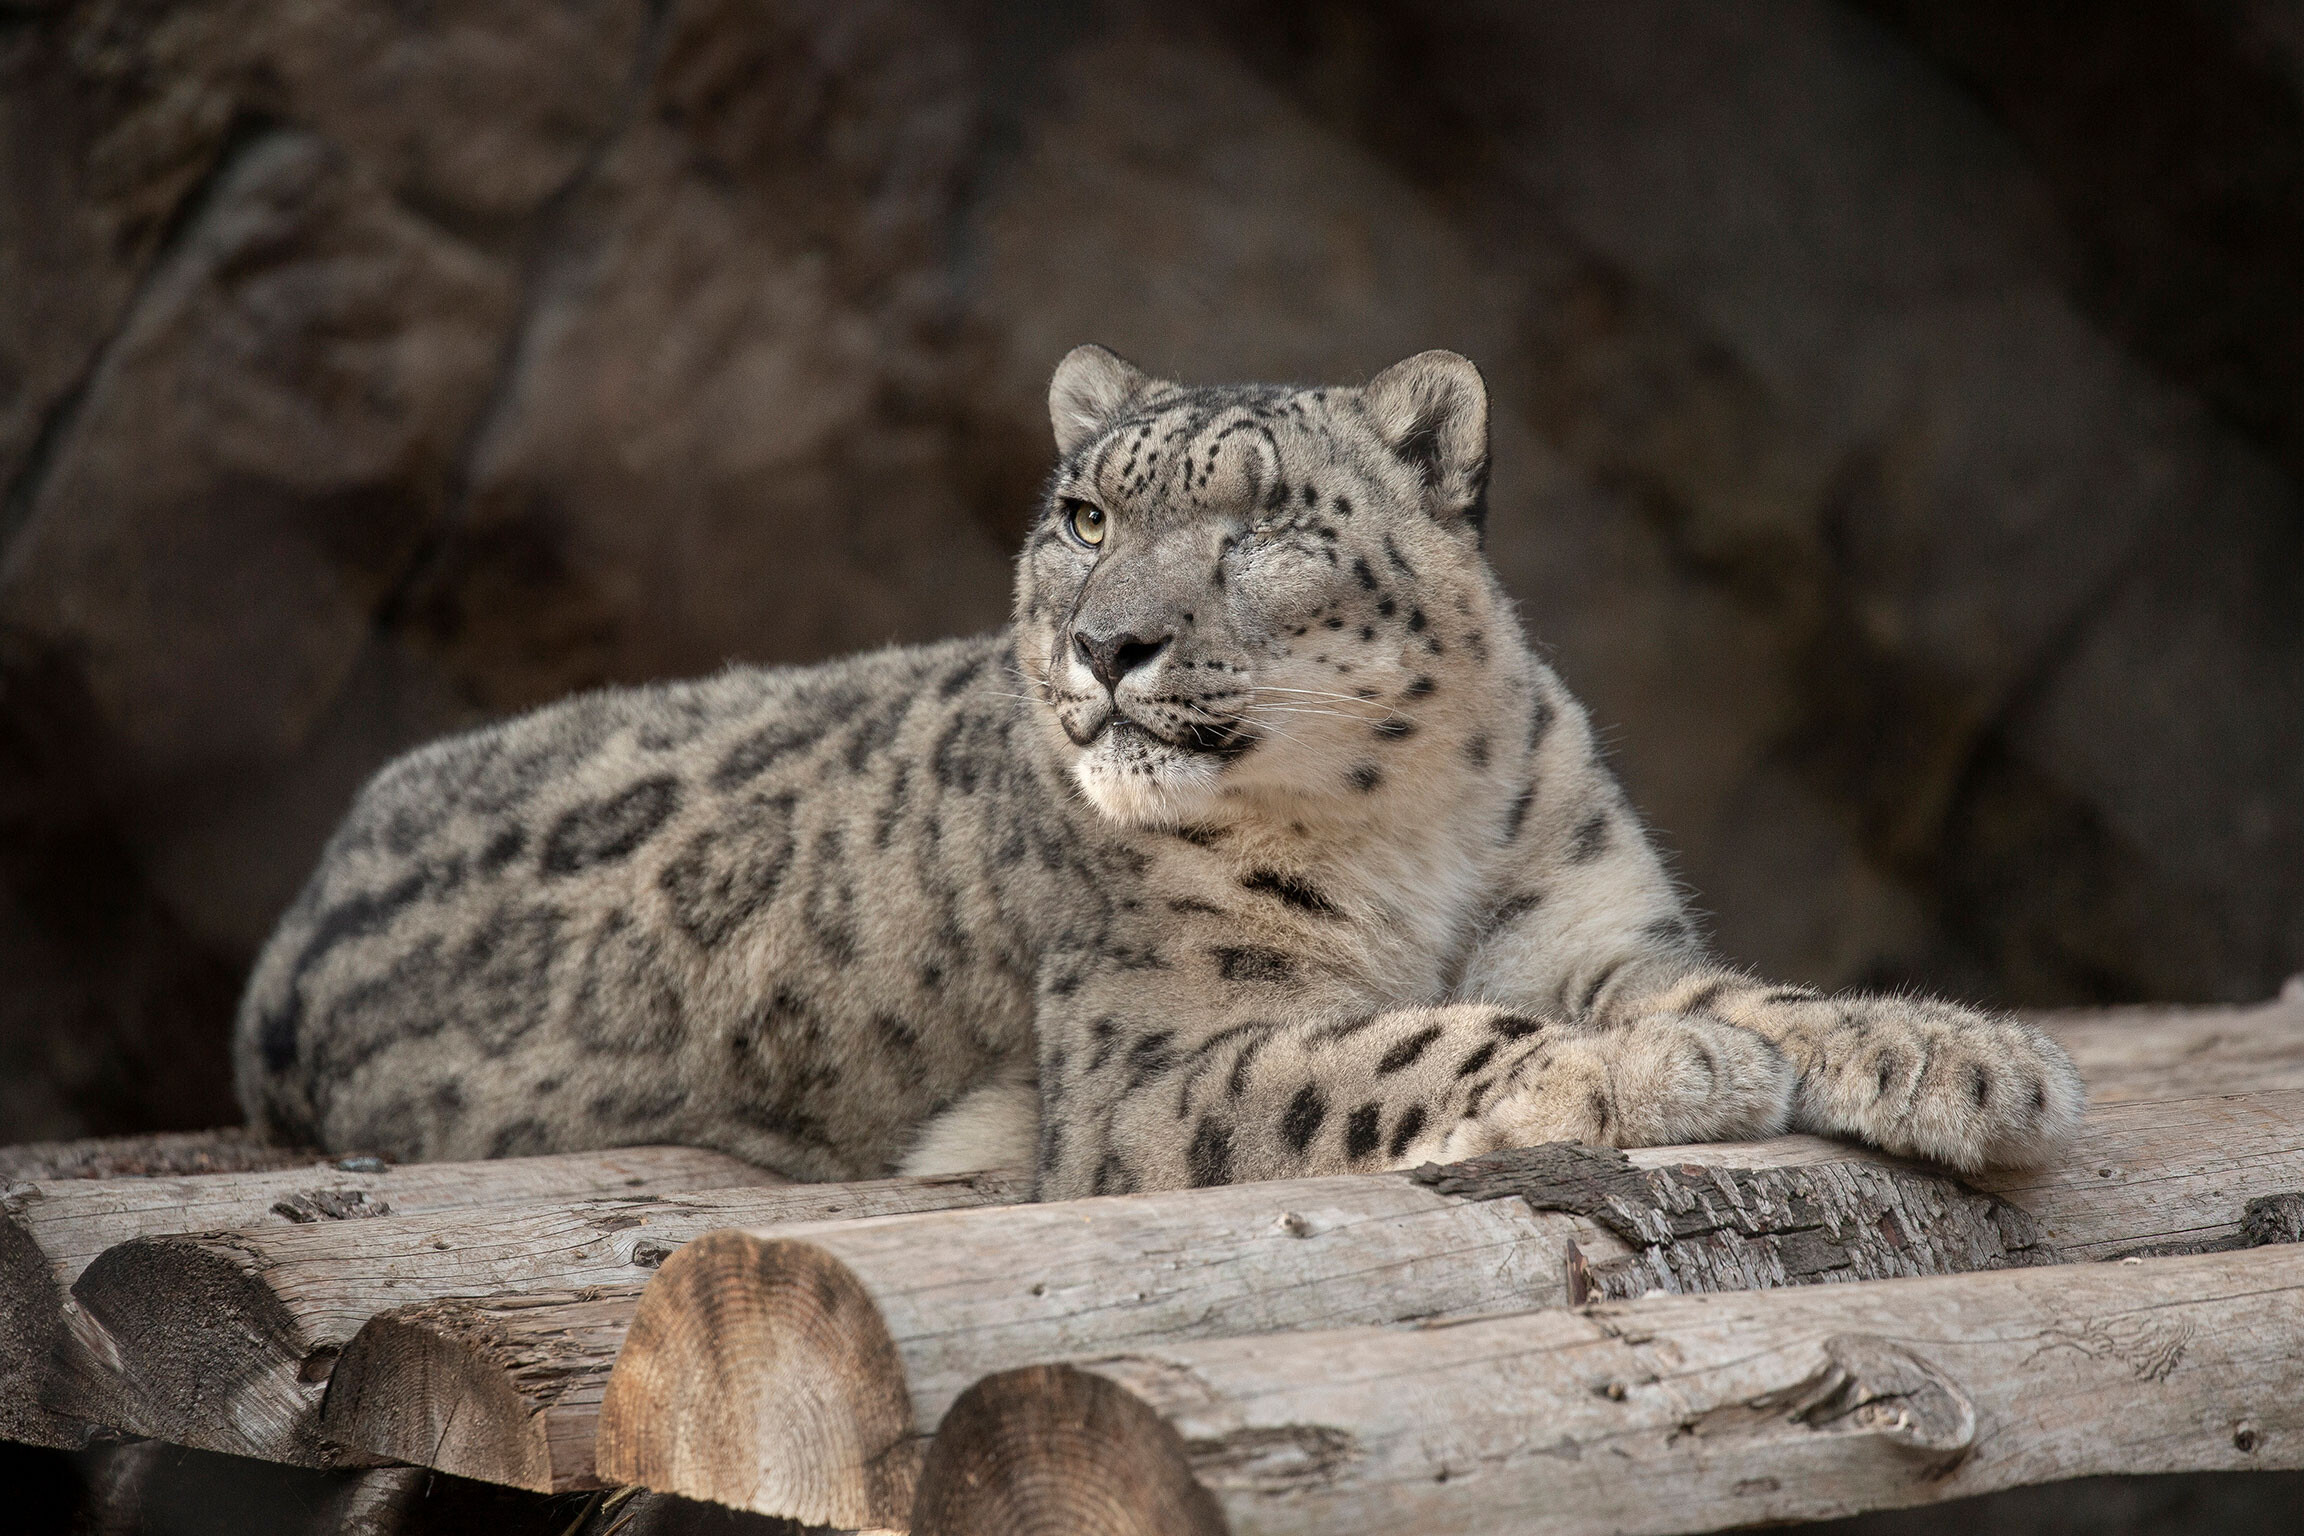 <i>Tammy Spratt/San Diego Zoo Wildlife Alliance/AP</i><br/>A male snow leopard at the San Diego Zoo tested positive for SARS-CoV-2 after showing symptoms of a cough and nasal discharge.